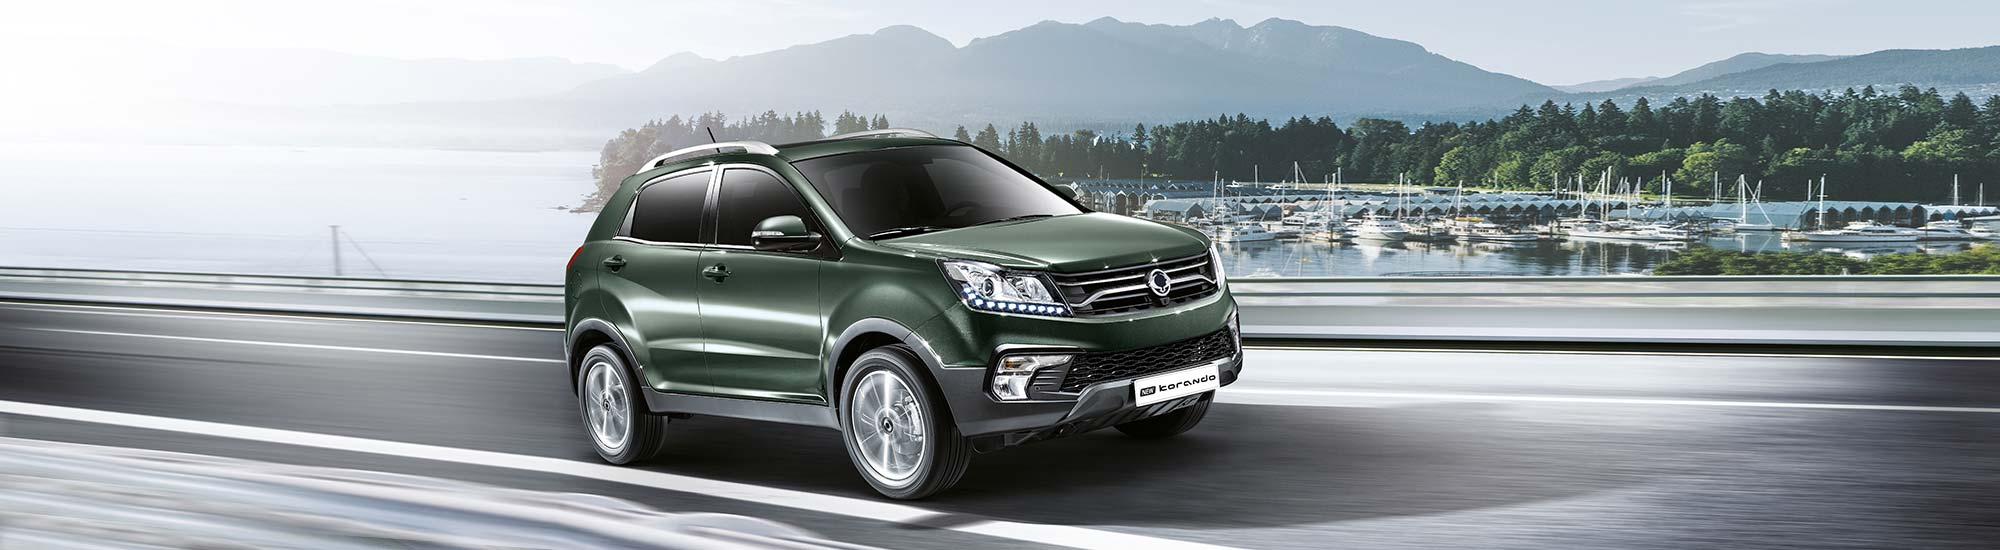 SsangYong Korando Contract Hire